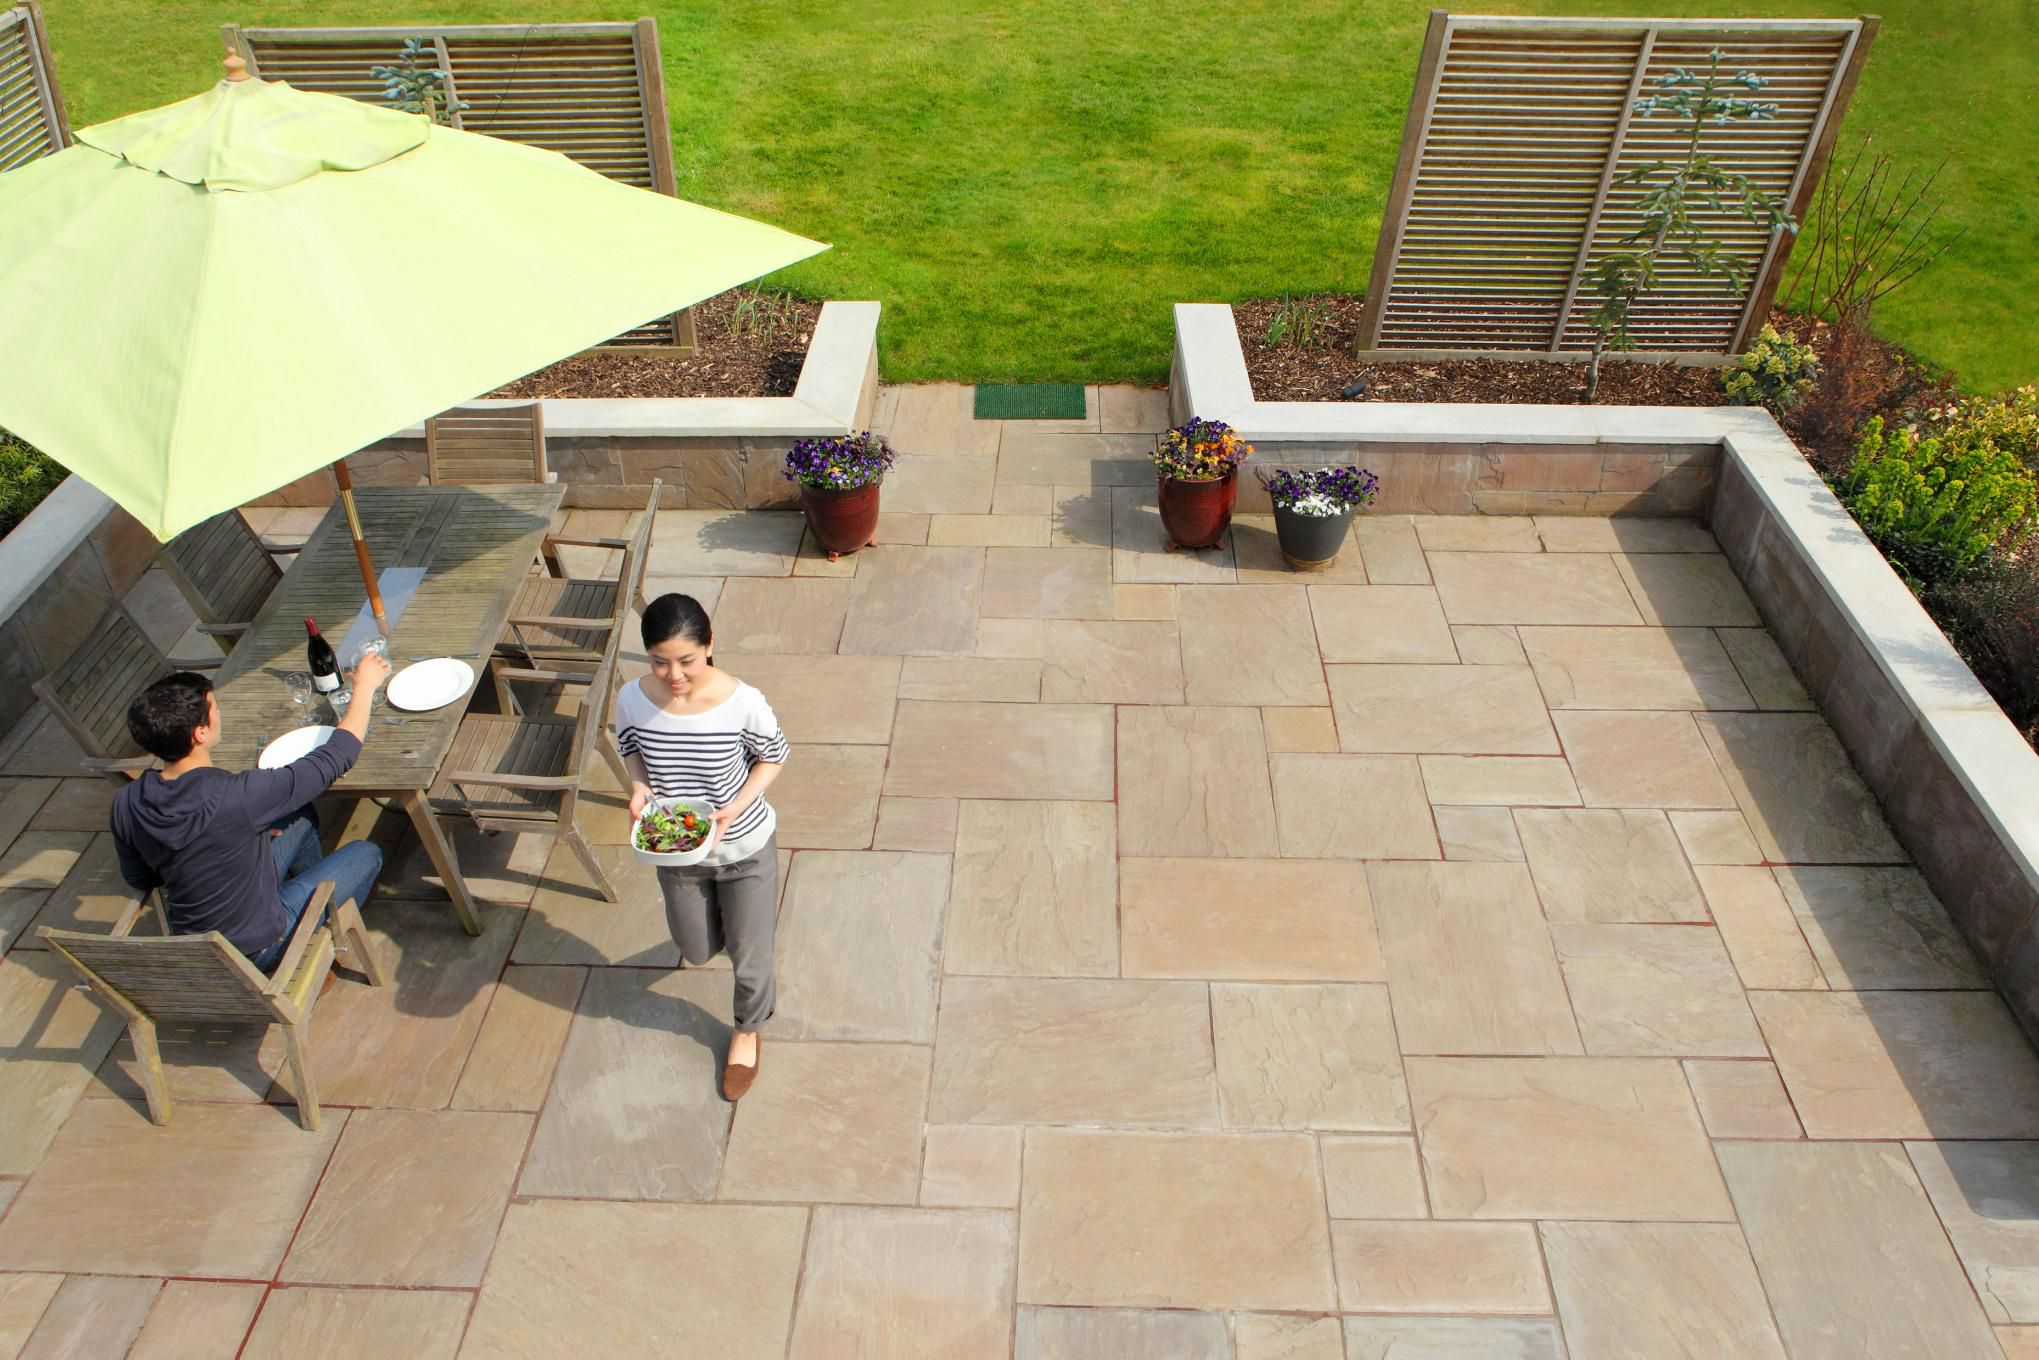 Types Of Tiles You Can Use For Outdoor Patios